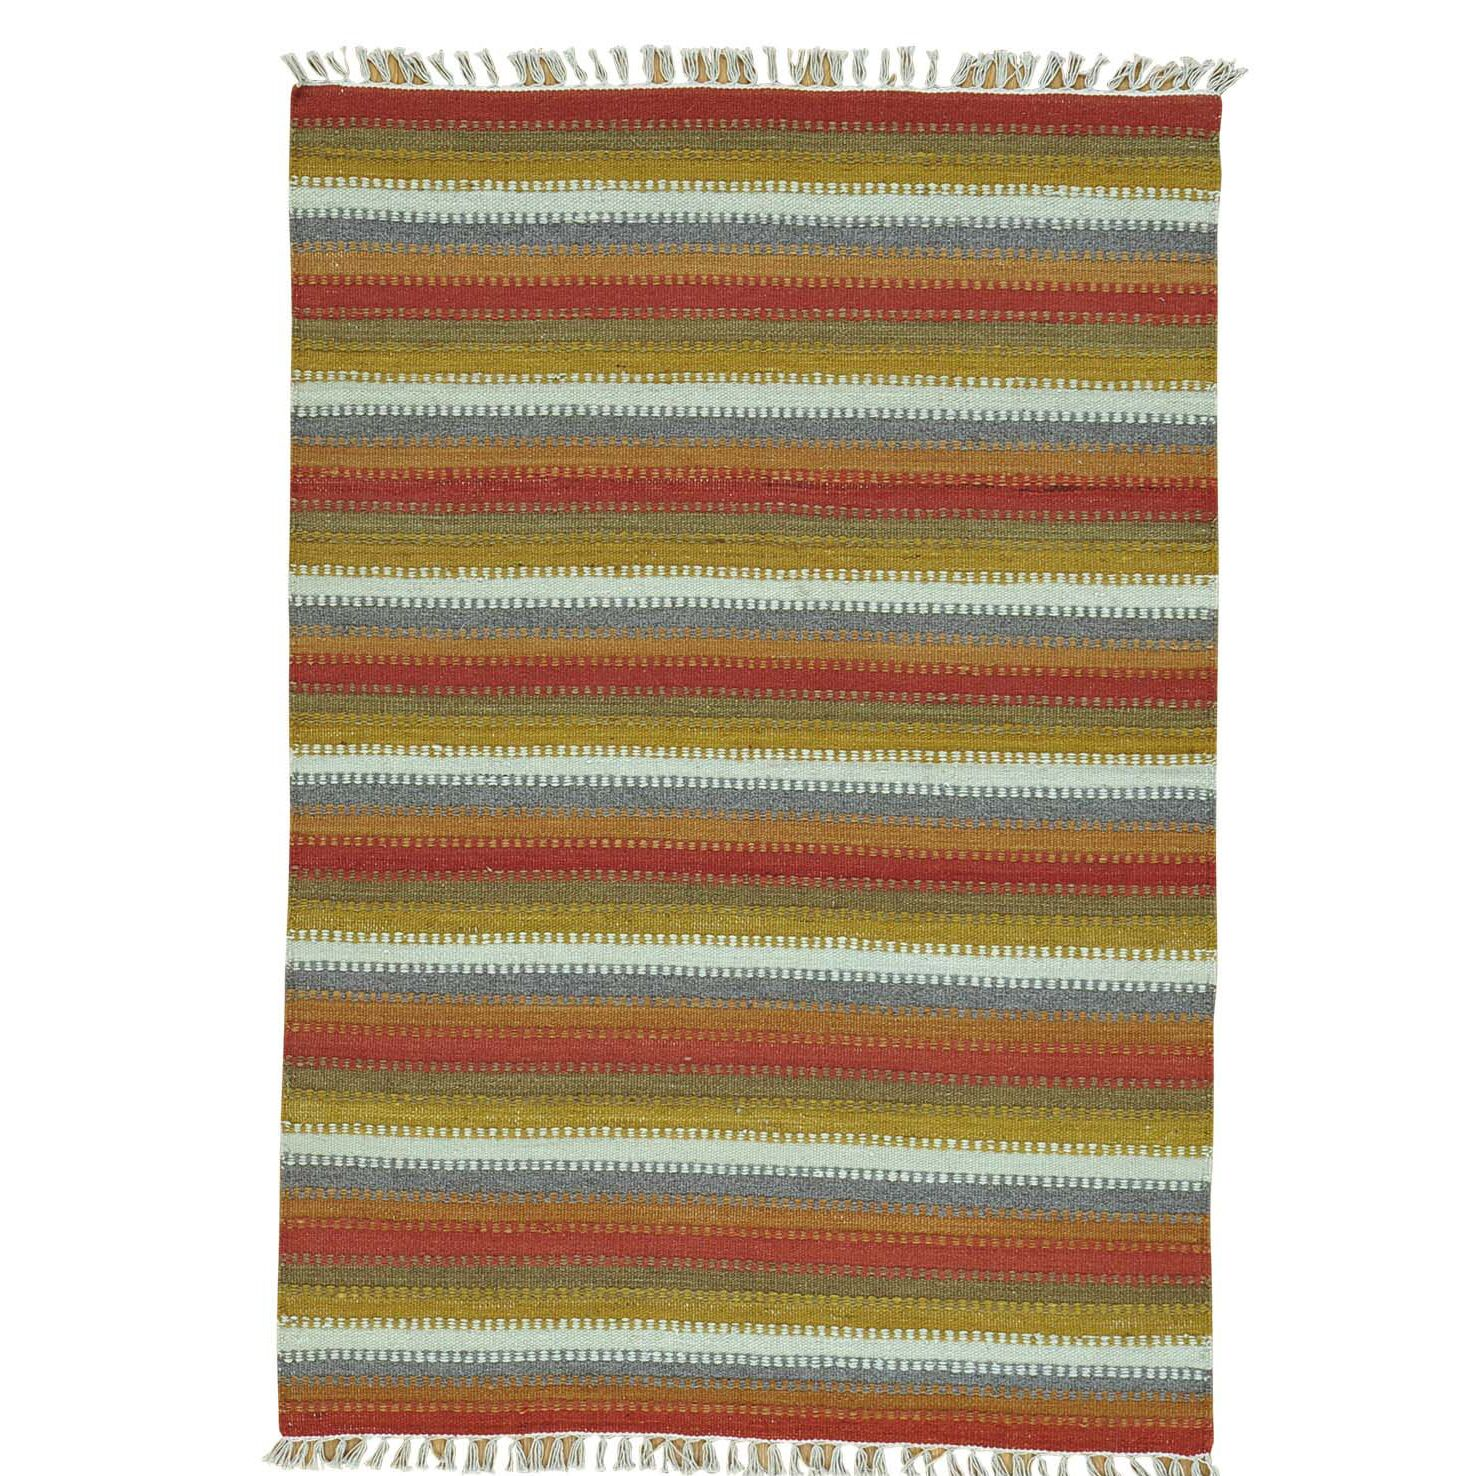 Striped Durie Kilim Flat Weave Oriental Hand-Knotted Red/Mustard Area Rug